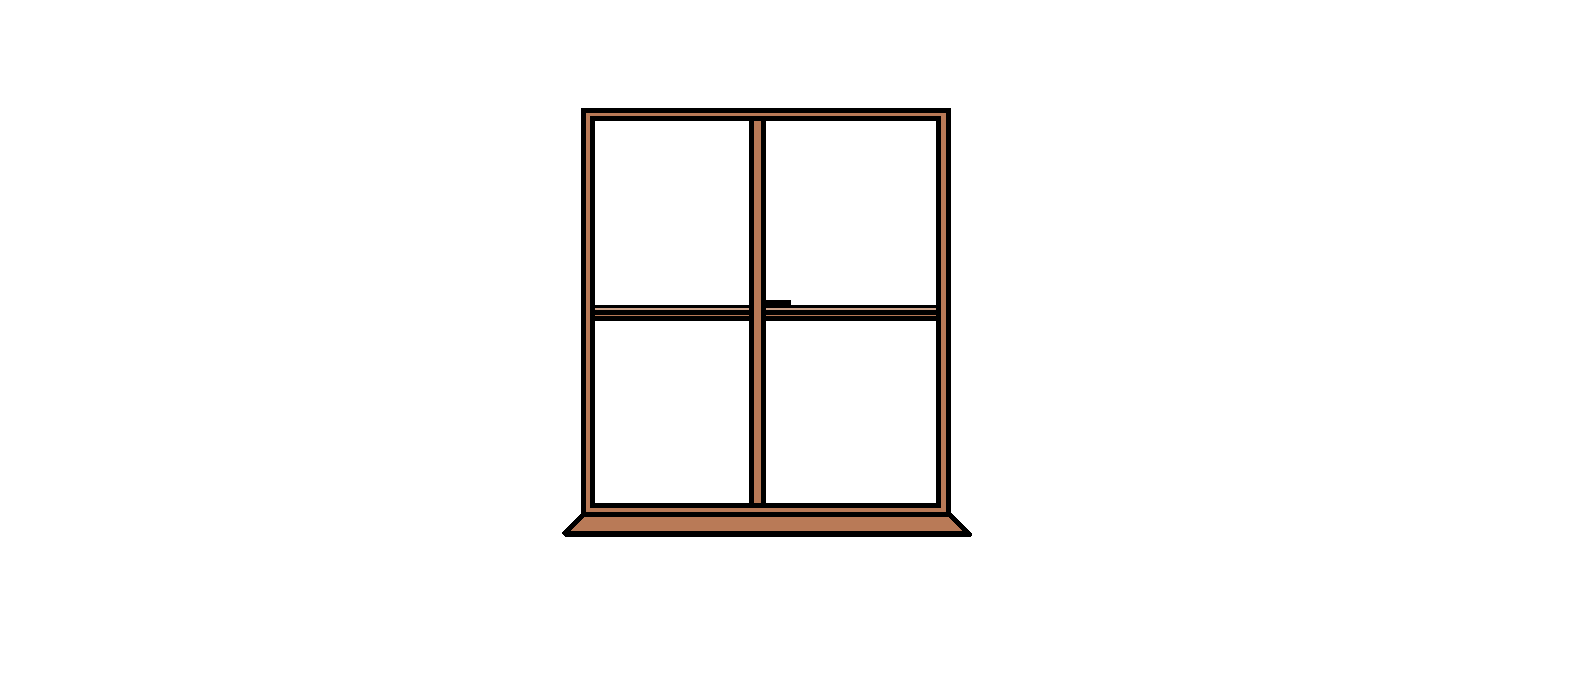 Door clipart square window Clipart House Clipart window%20clipart Window